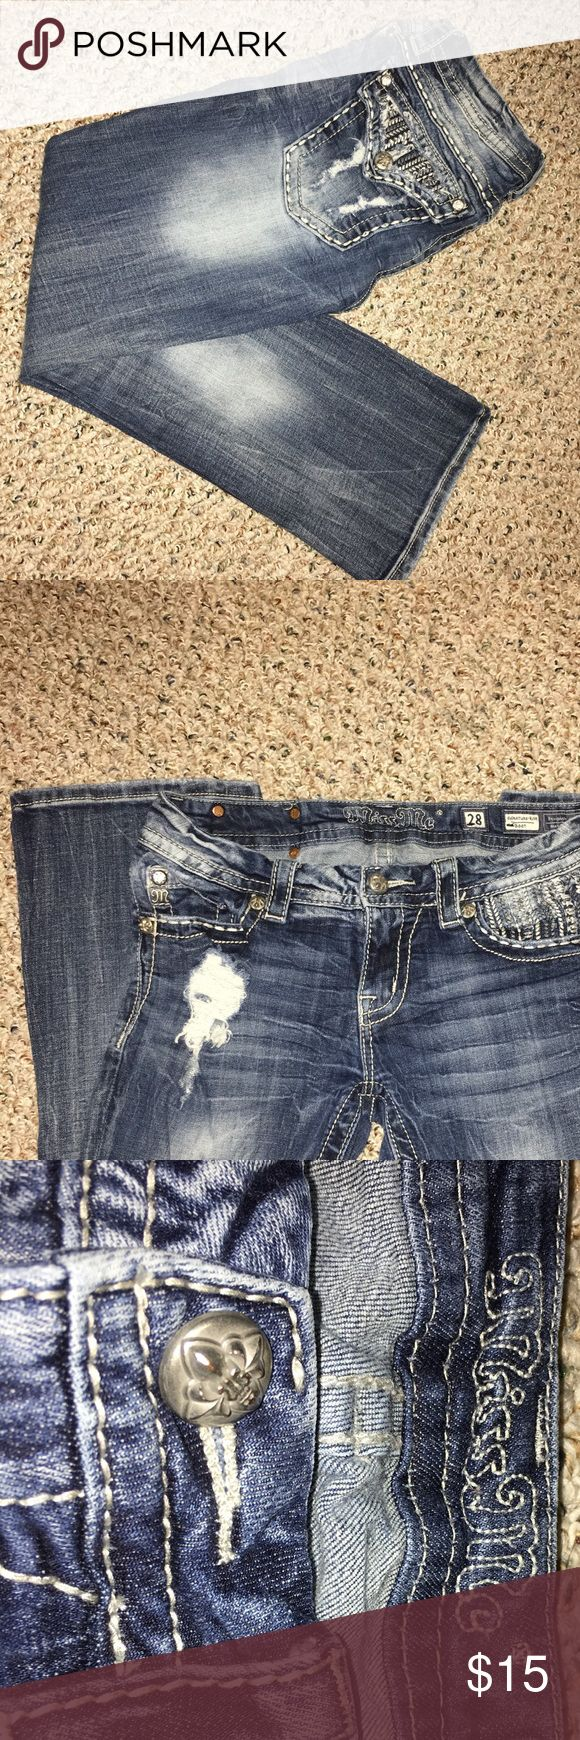 Miss Me jeans!! Size 28 miss me jeans! These were a Christmas gift but they no longer fit so I am looking for someone to take them off my hands!! Get you some bling bling jeans for super cheap!! Miss Me Jeans Boot Cut